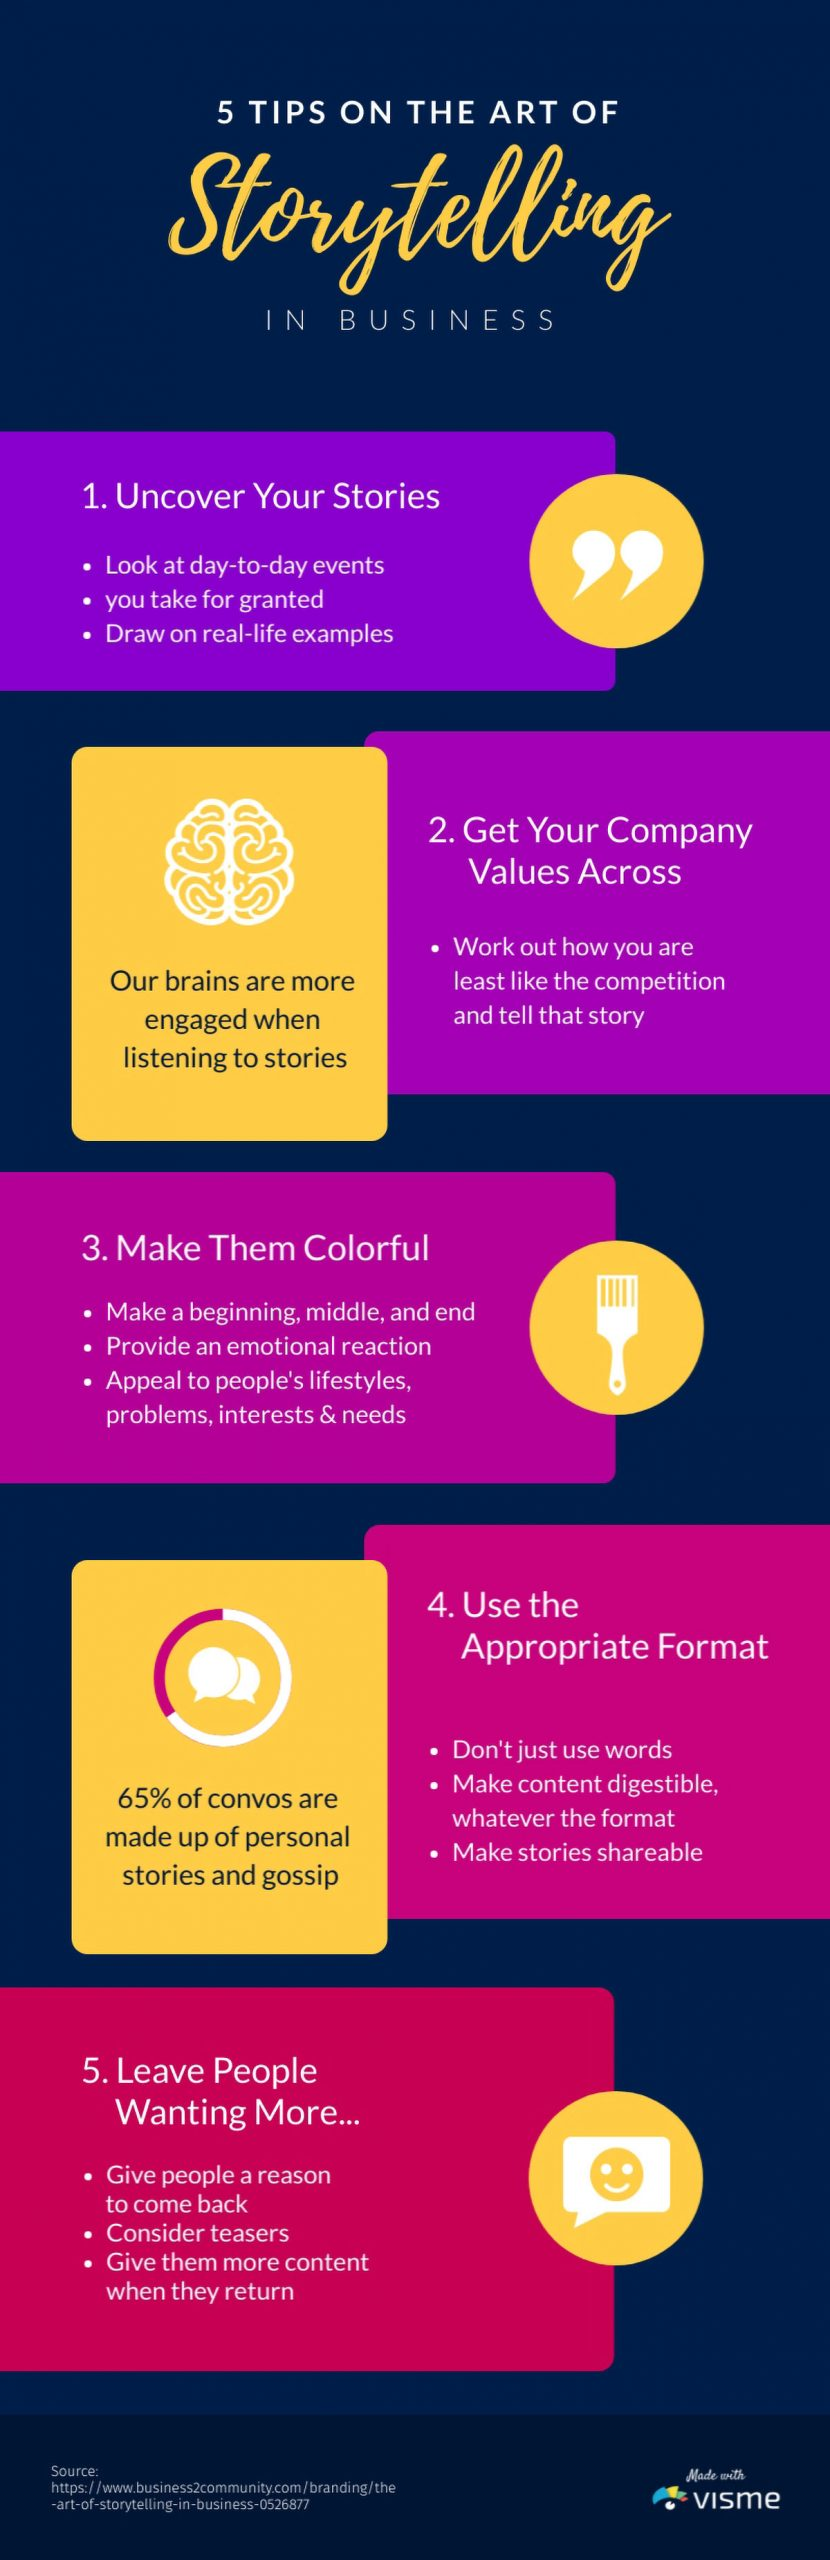 marketing presentation - the art of storytelling infographic